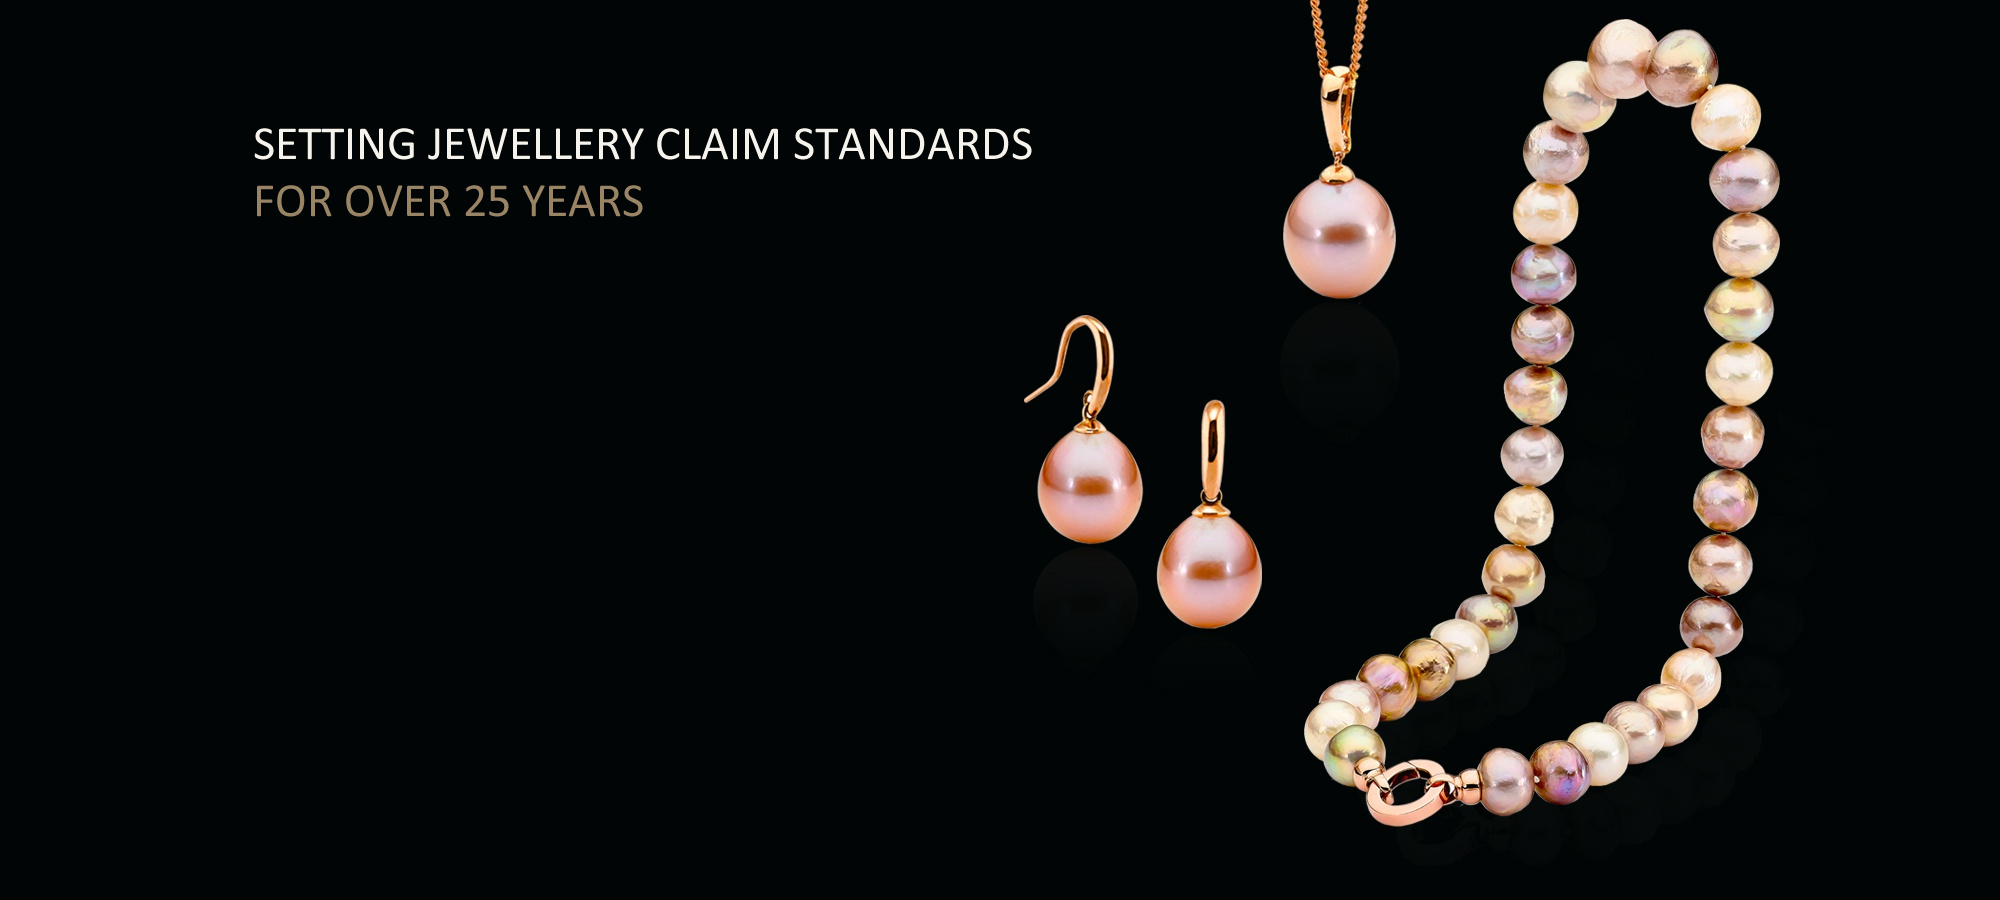 setting jewellery claim standards for over 25 years